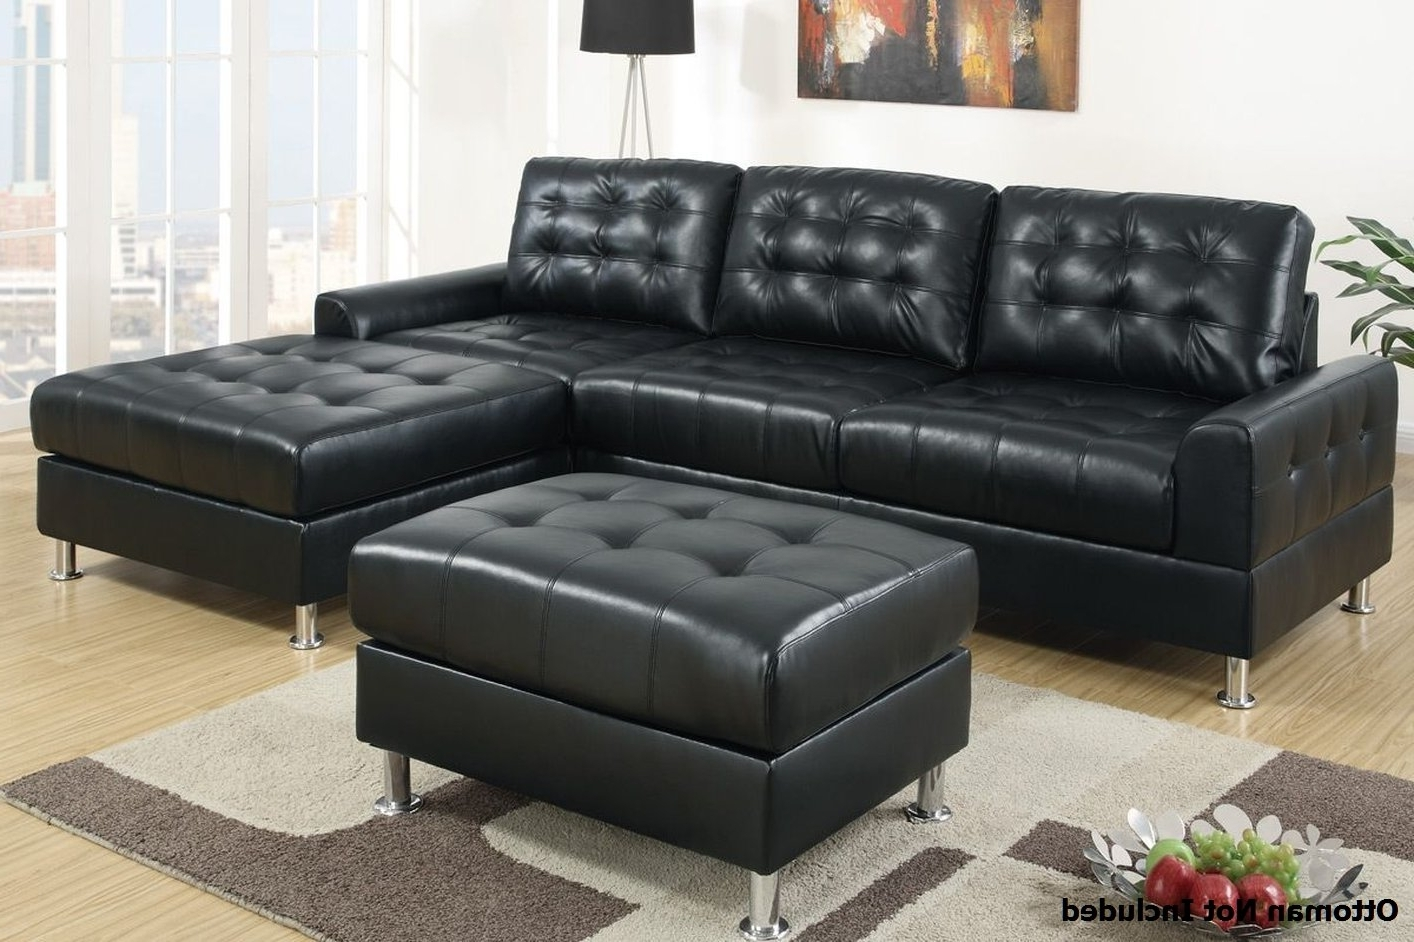 Sectional Sofa Design: Comfrotable Black Leather Sectional Sof Within Well Known Black Leather Sectionals With Ottoman (View 15 of 15)